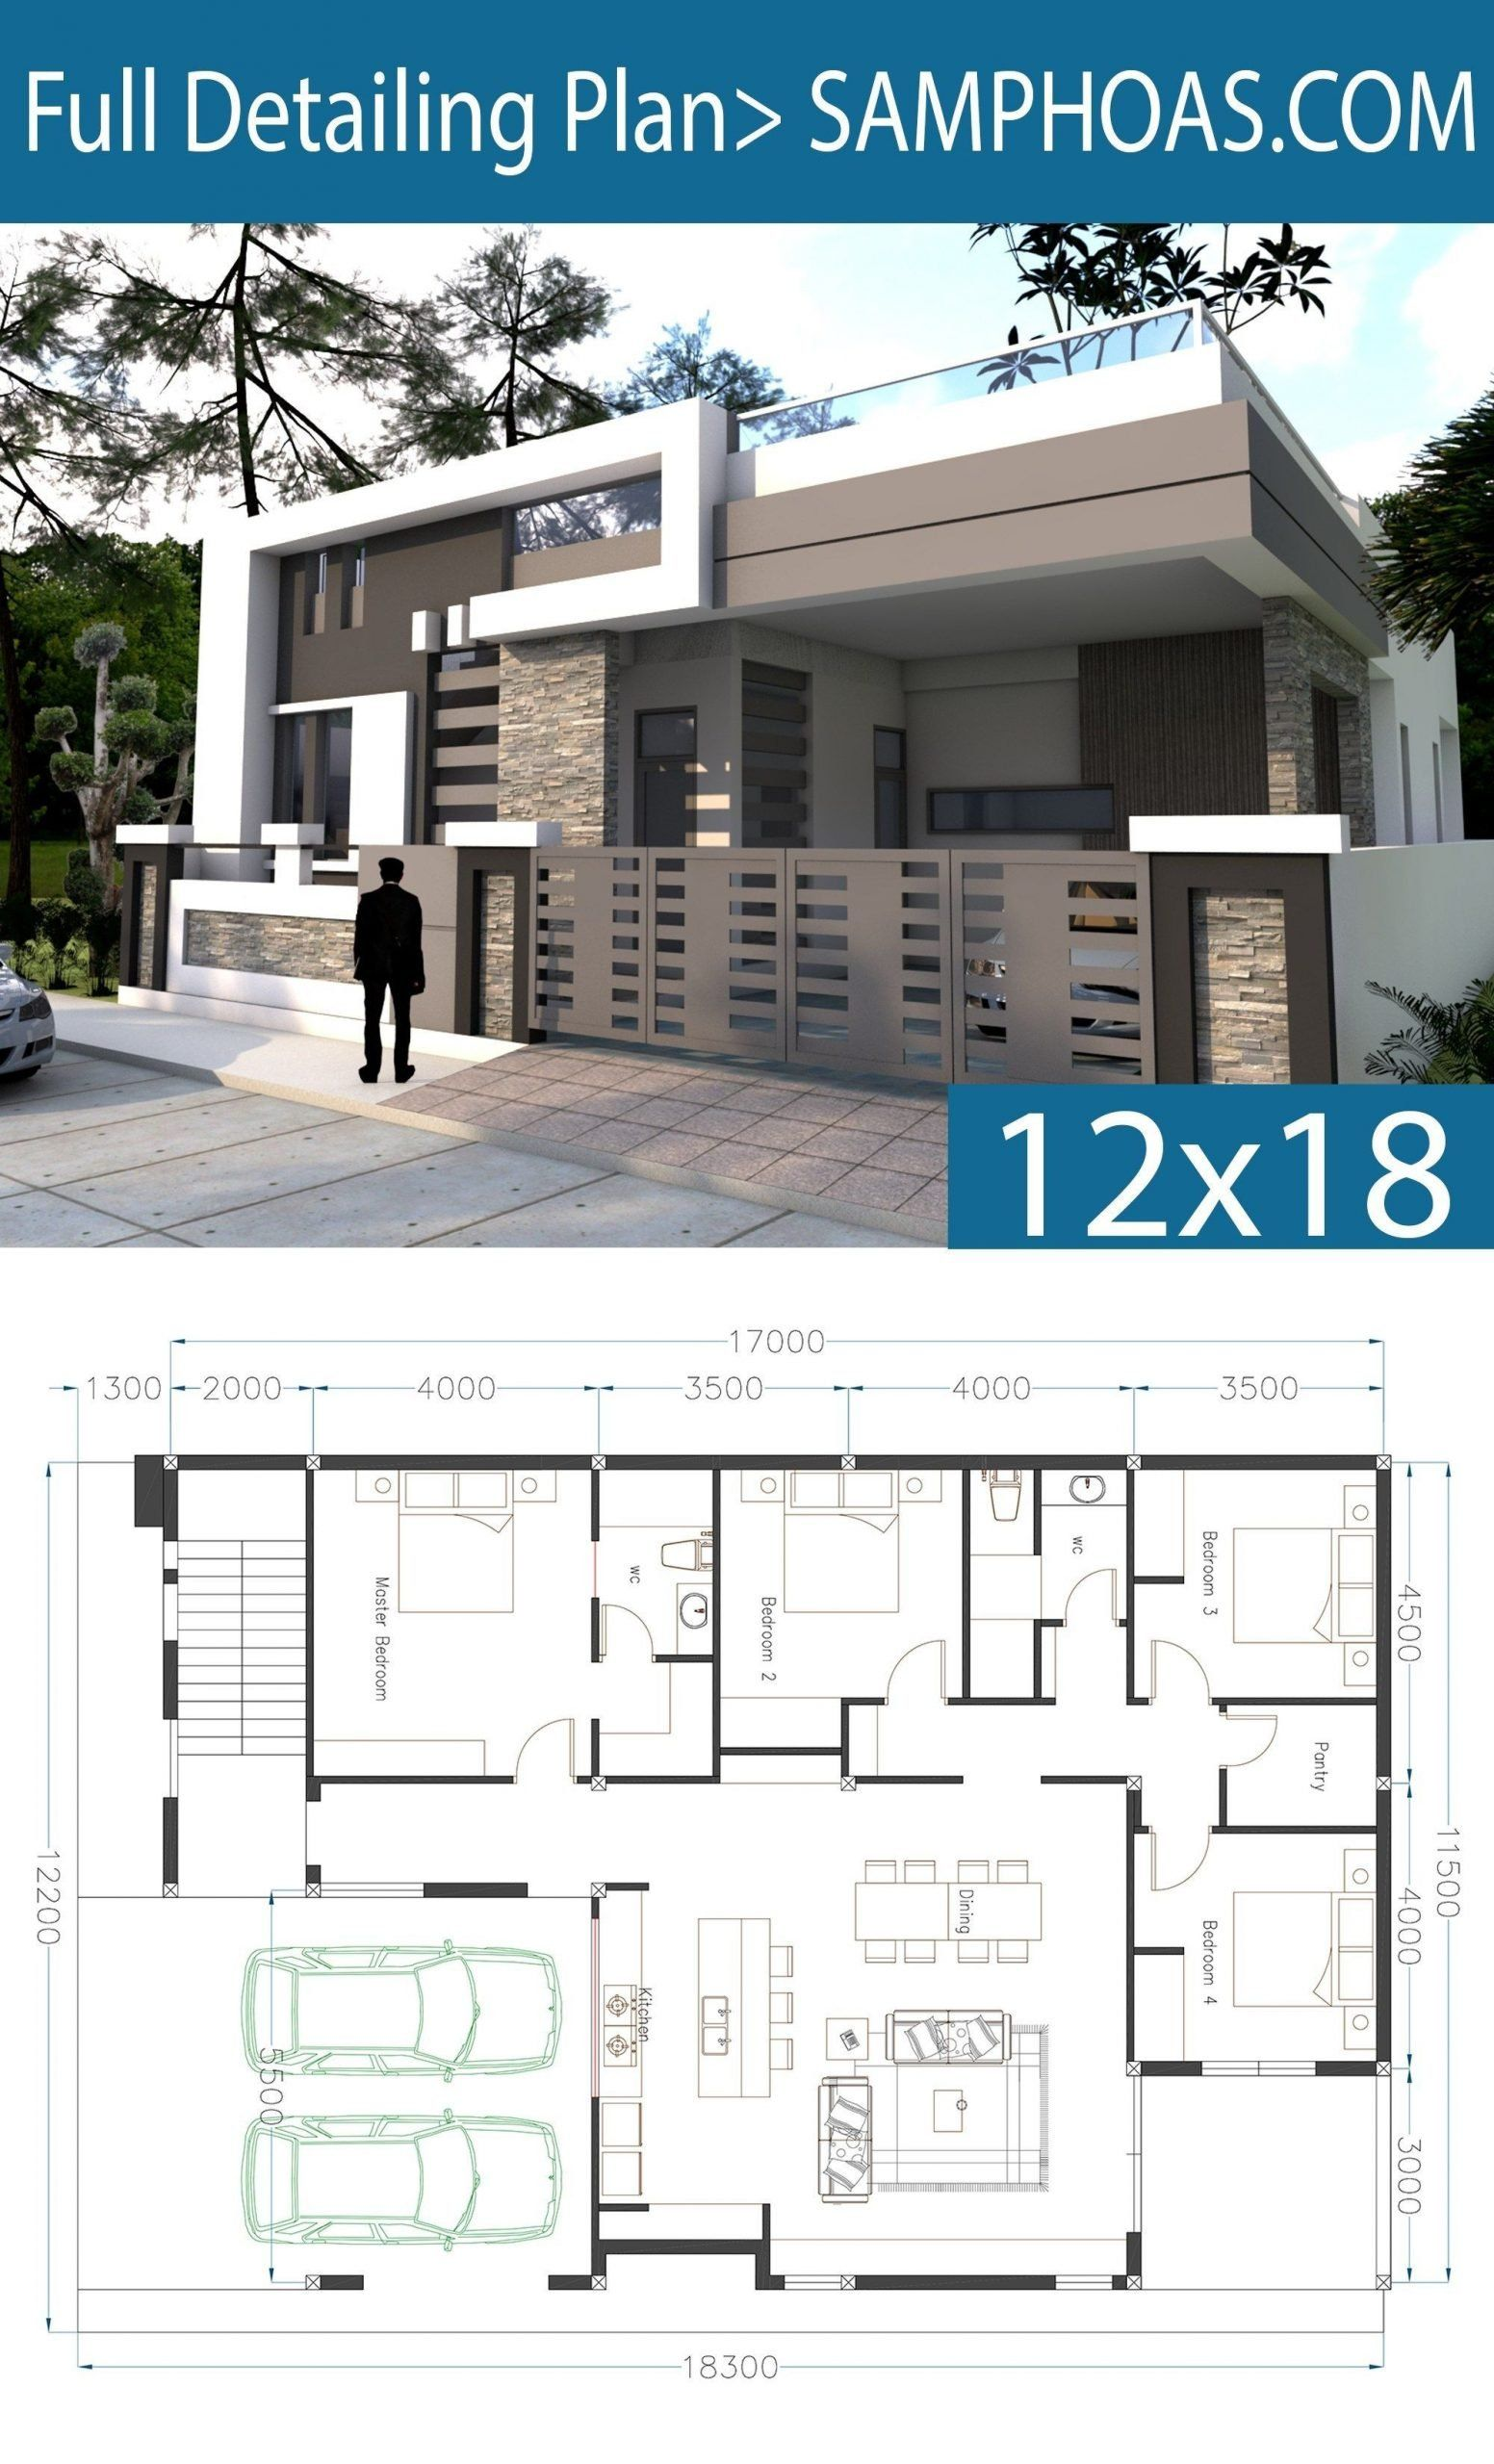 One Story Modern House Floor Plans E Story House Plan 40x60 Sketchup Home Design In 2020 Small Modern House Plans Model House Plan House Architecture Design